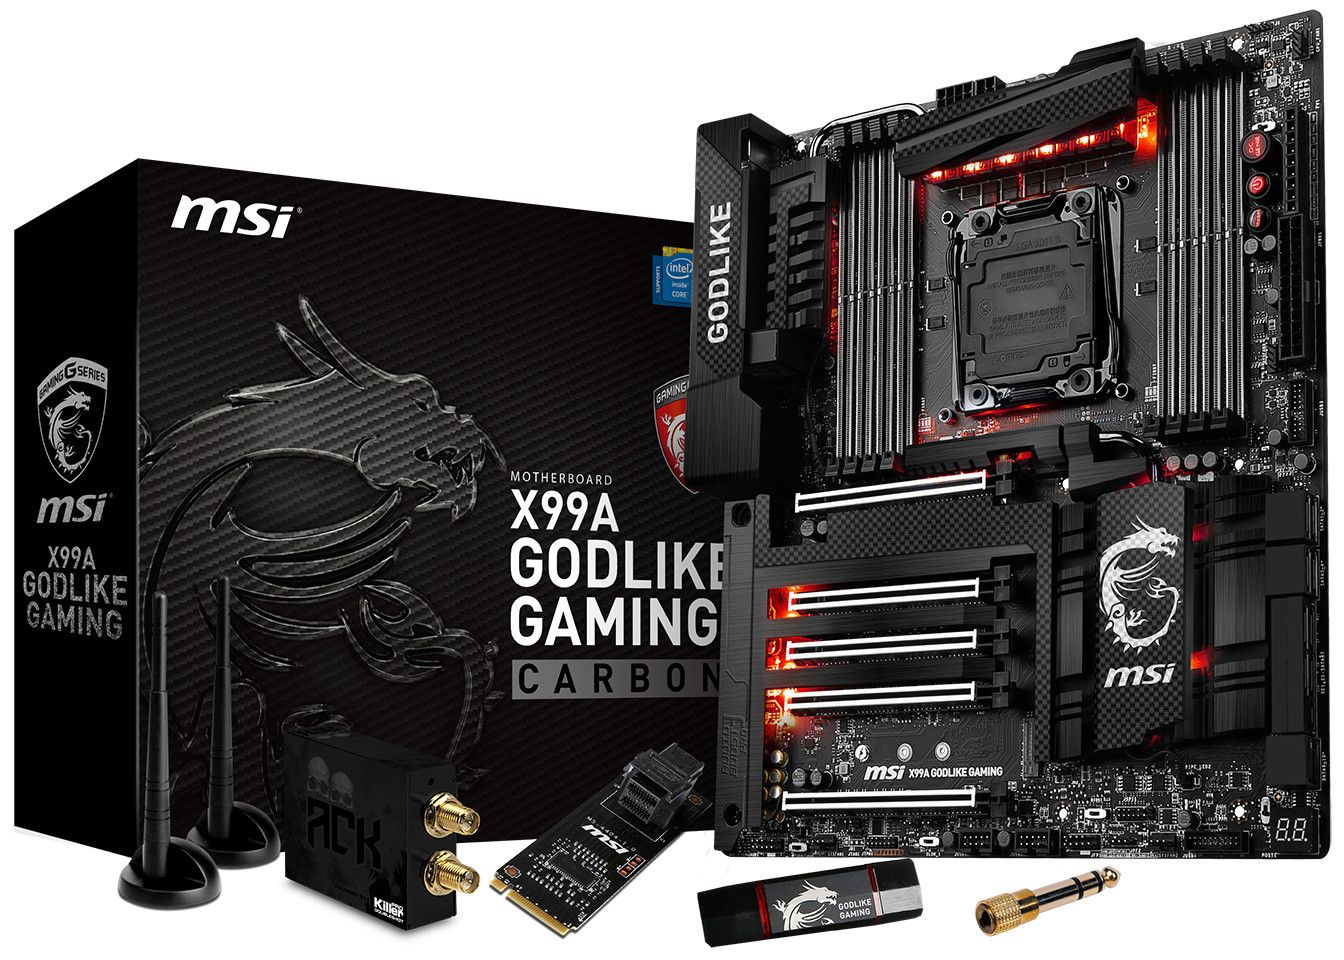 MSI Announces the X99A GODLIKE Gaming Carbon Motherboard - TECKKNOW